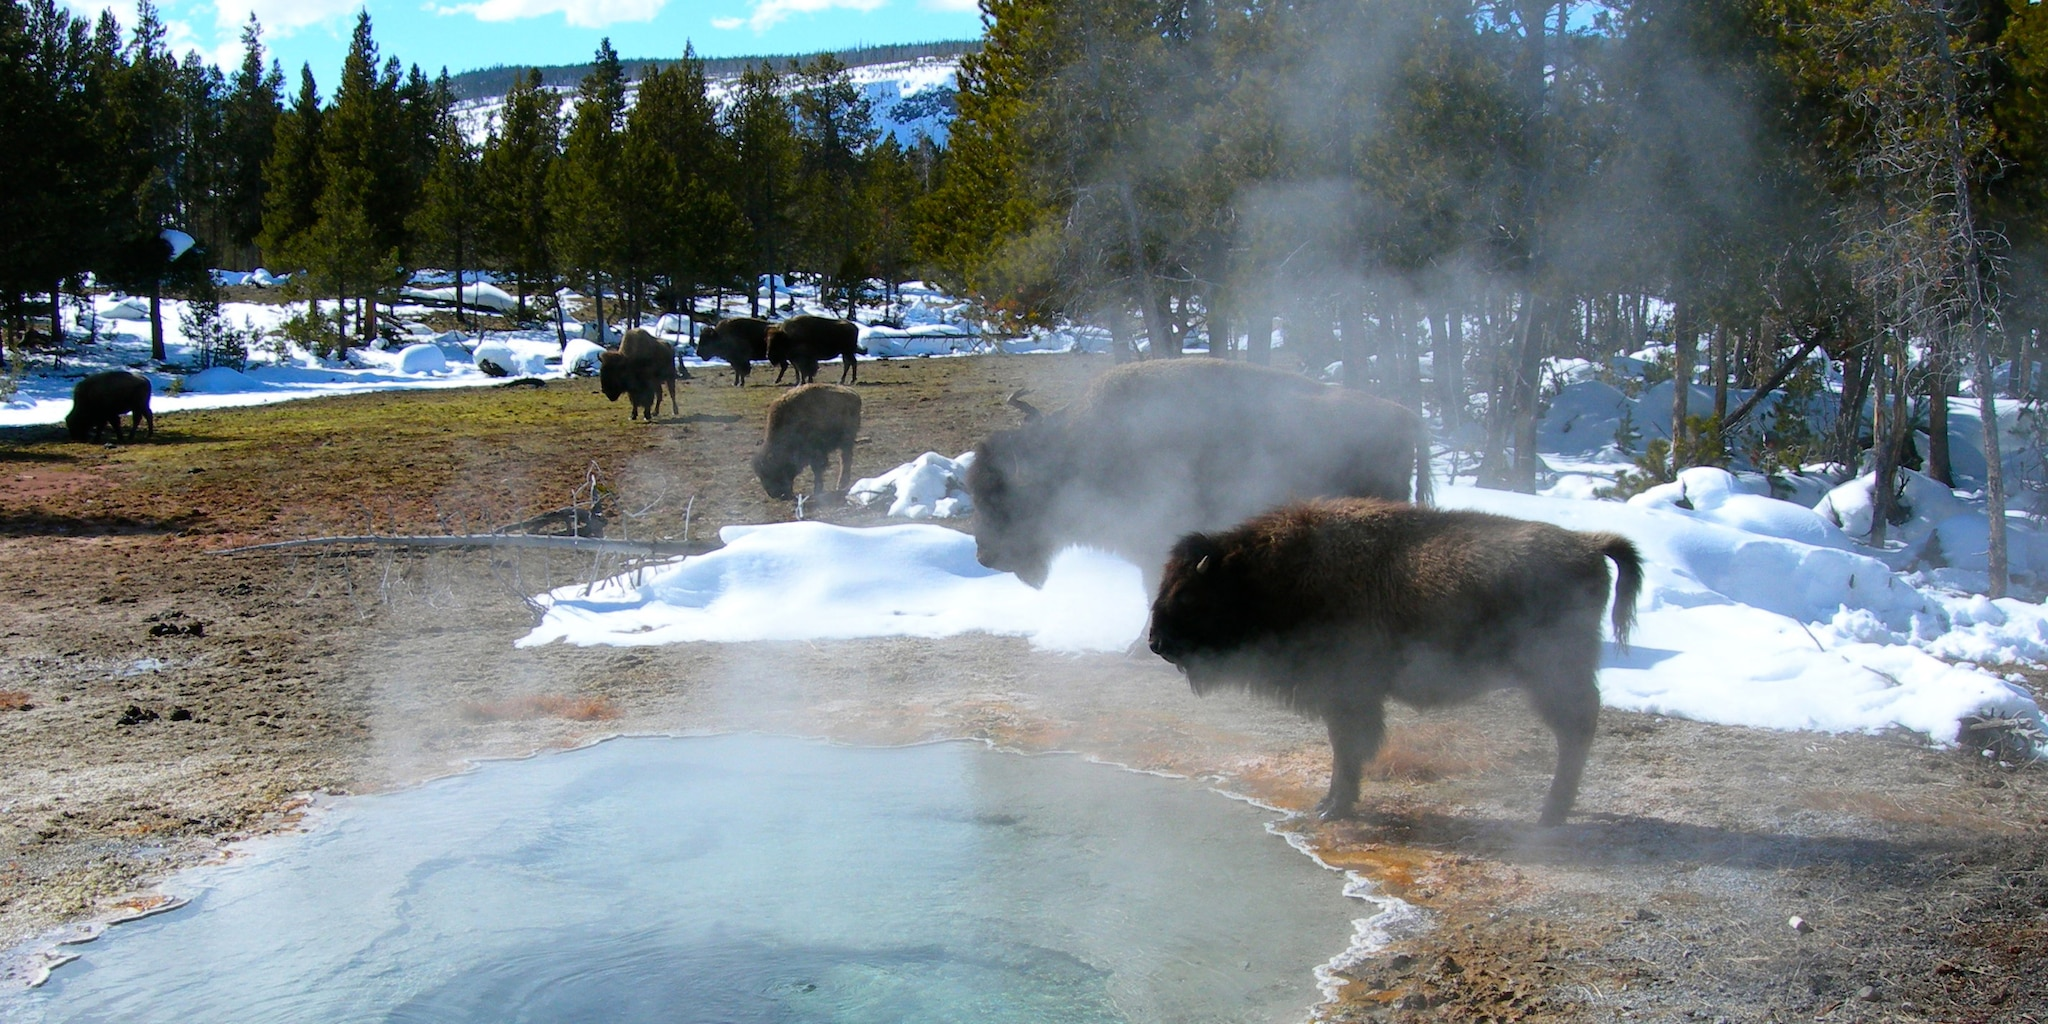 Bison graze near steaming hot springs